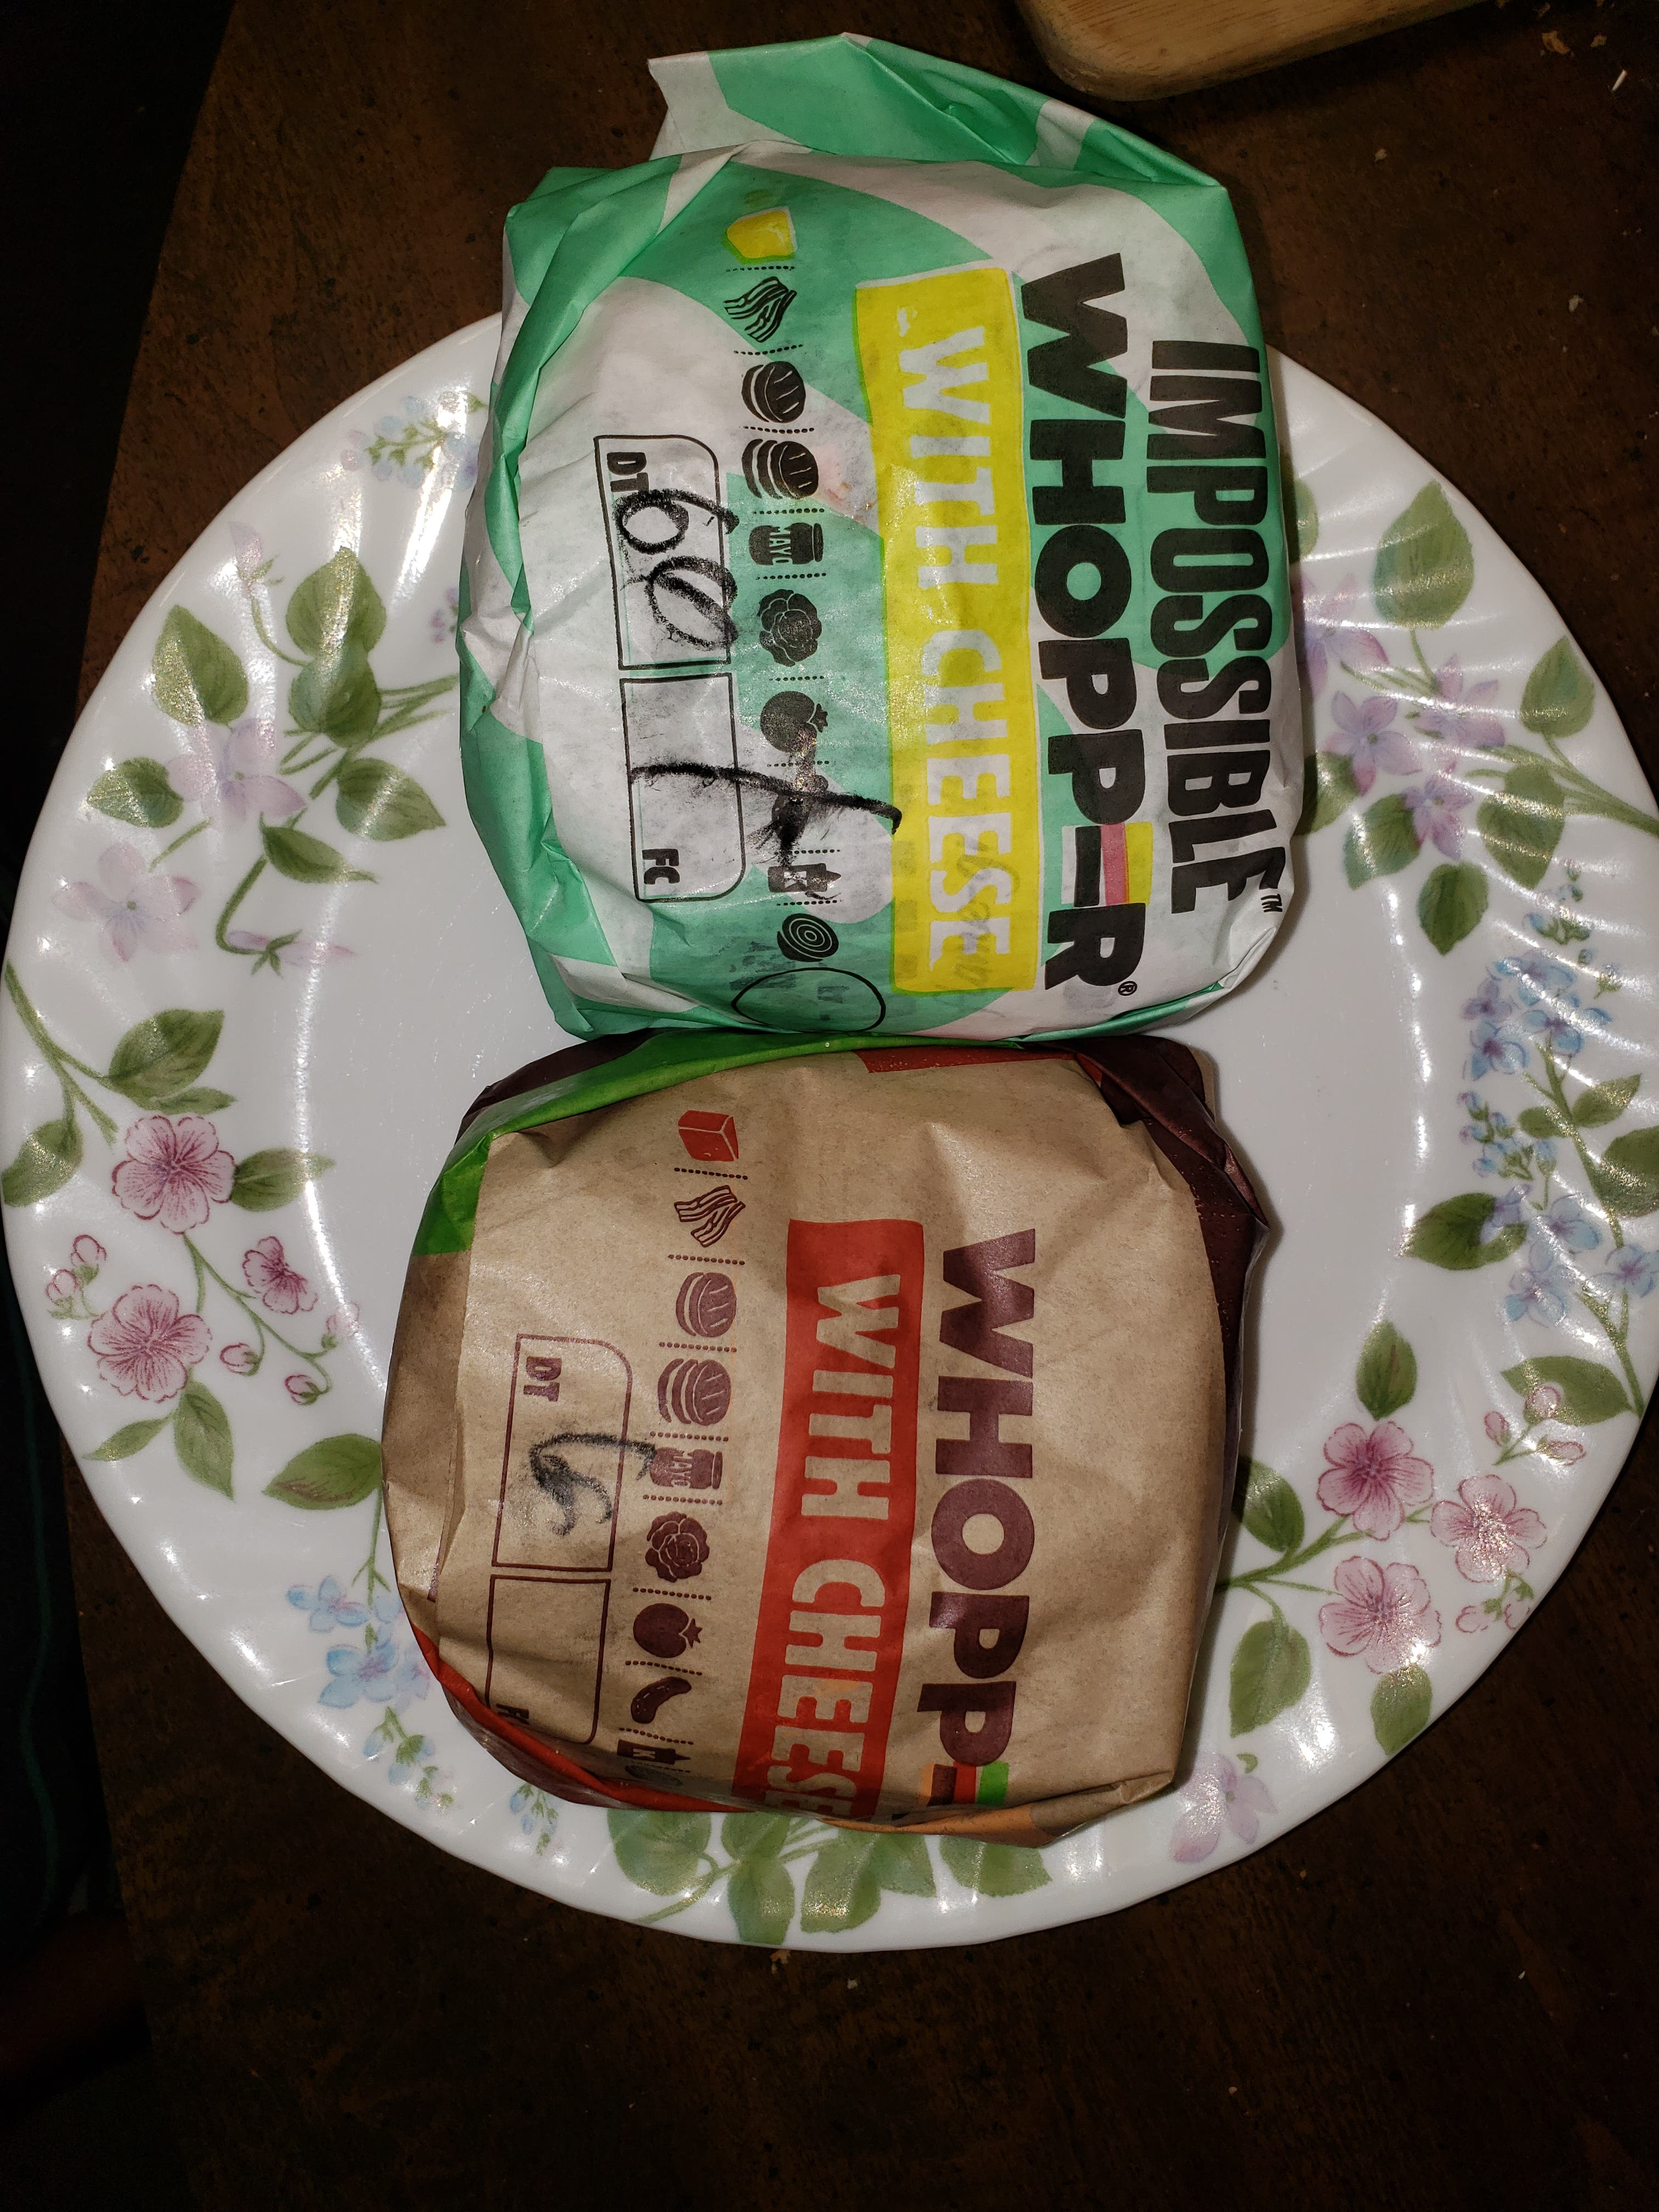 Burger King Dared Me (& My Cat) To Taste Test The Impossible Whopper